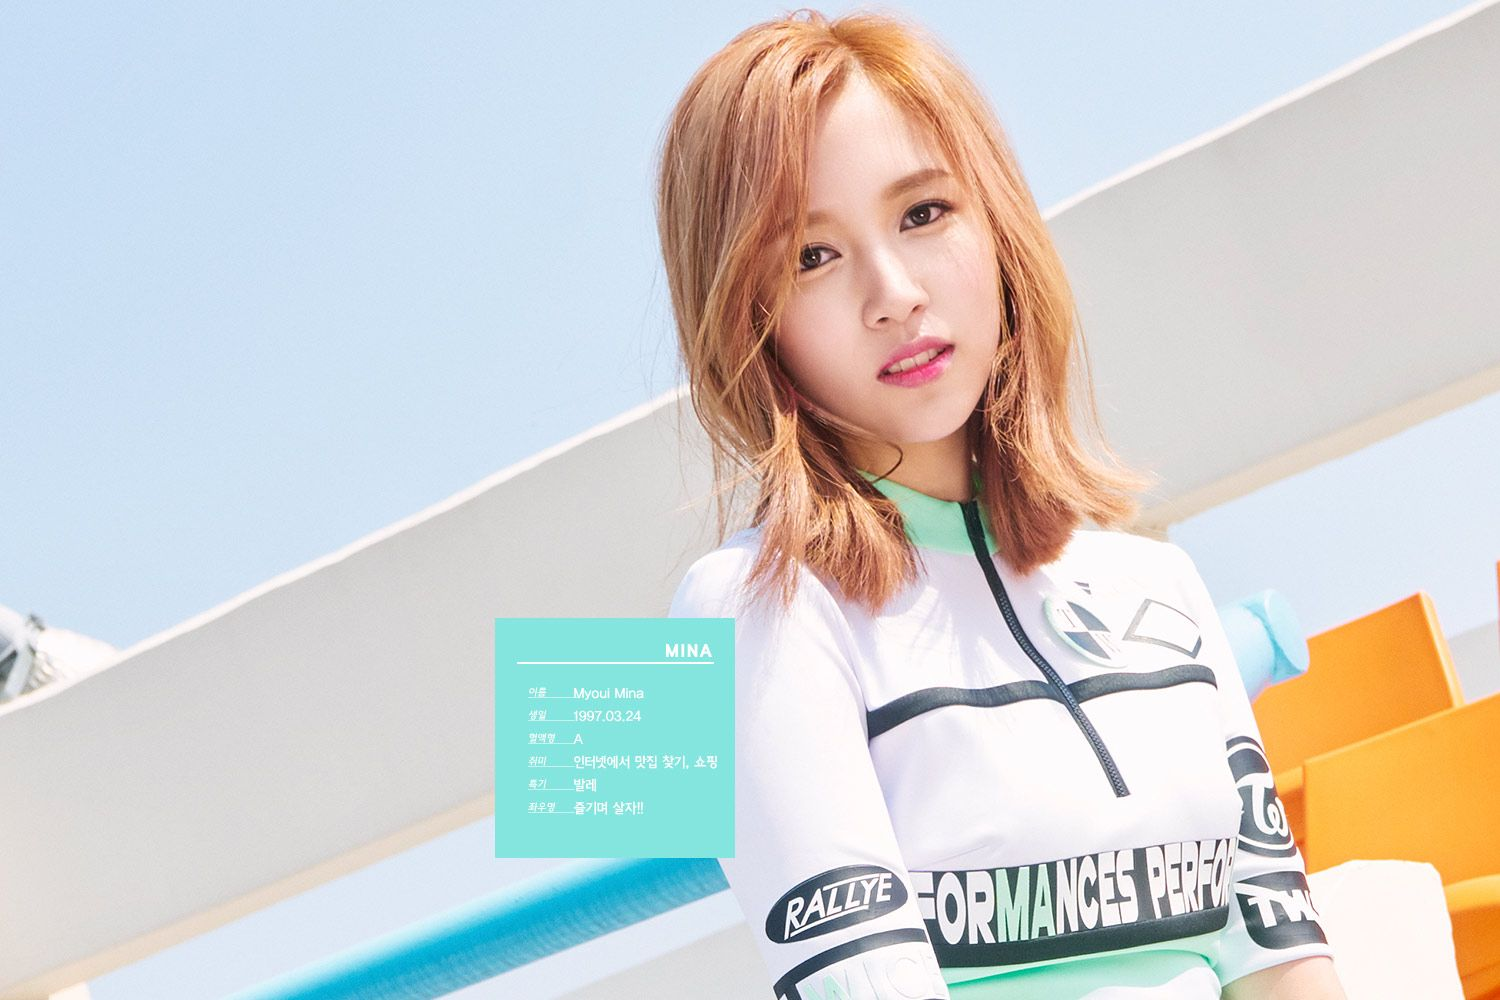 TWICE MINA WALLPAPER | Kpop Spam Music Video